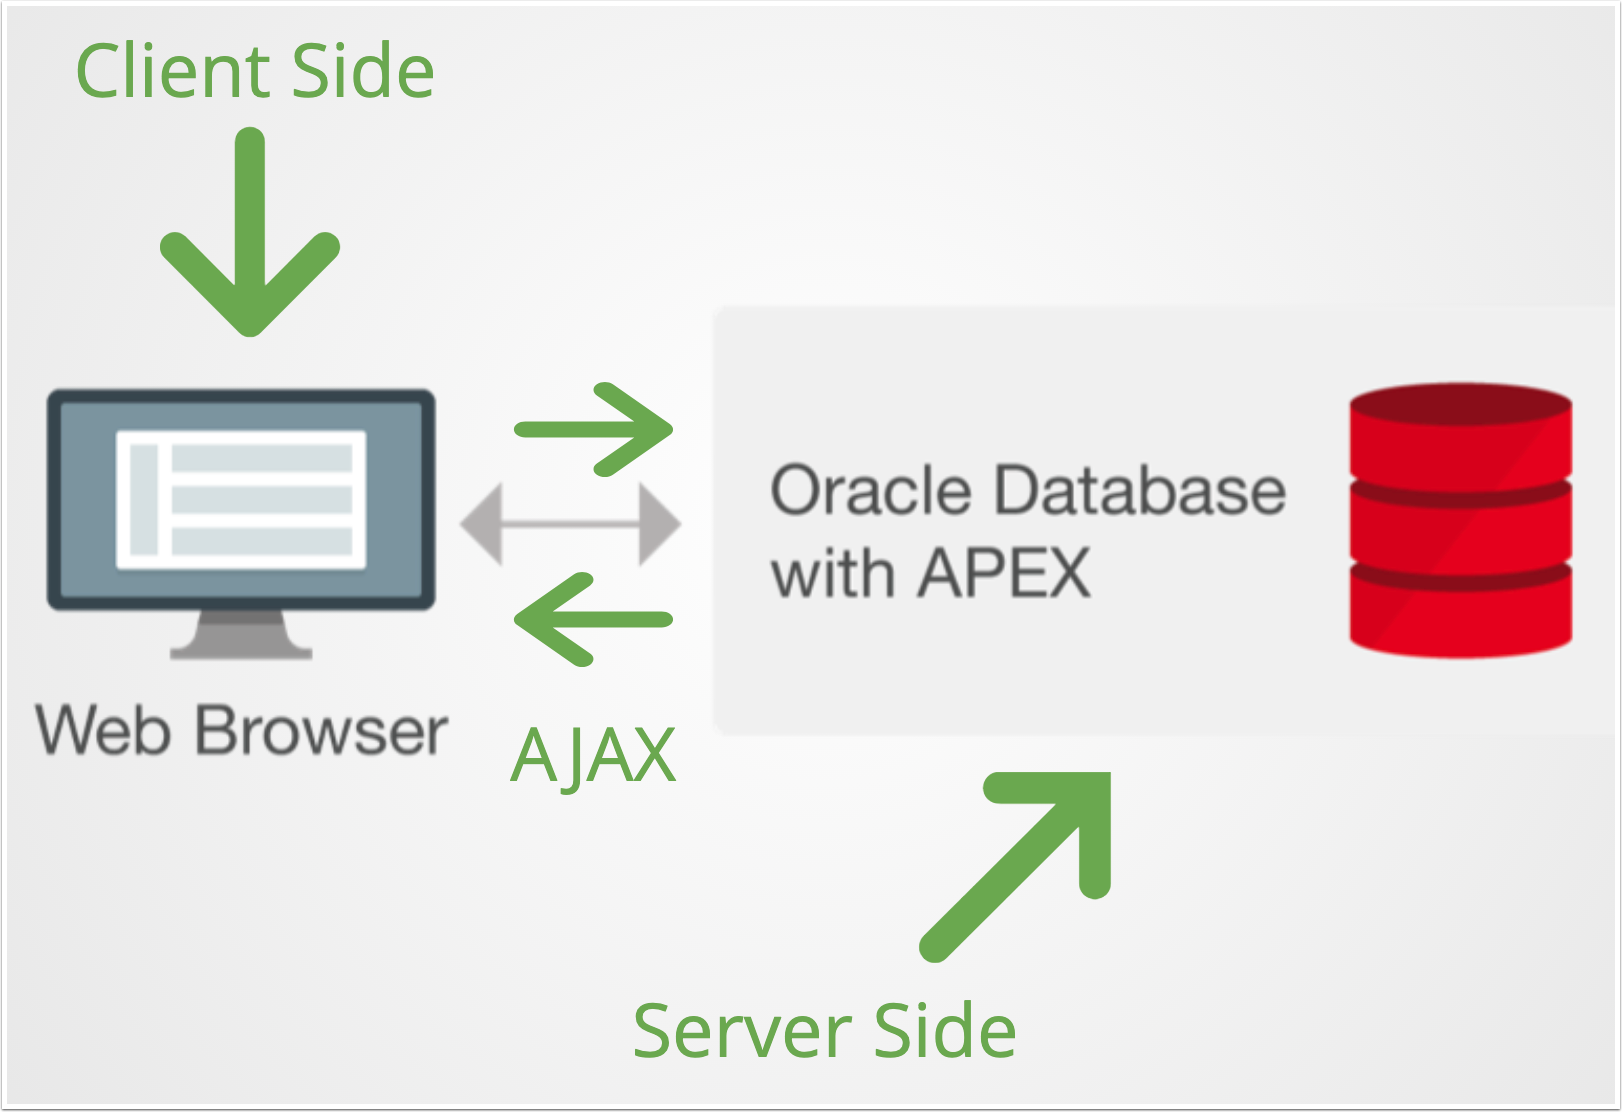 Video: Getting started with AJAX in Oracle APEX